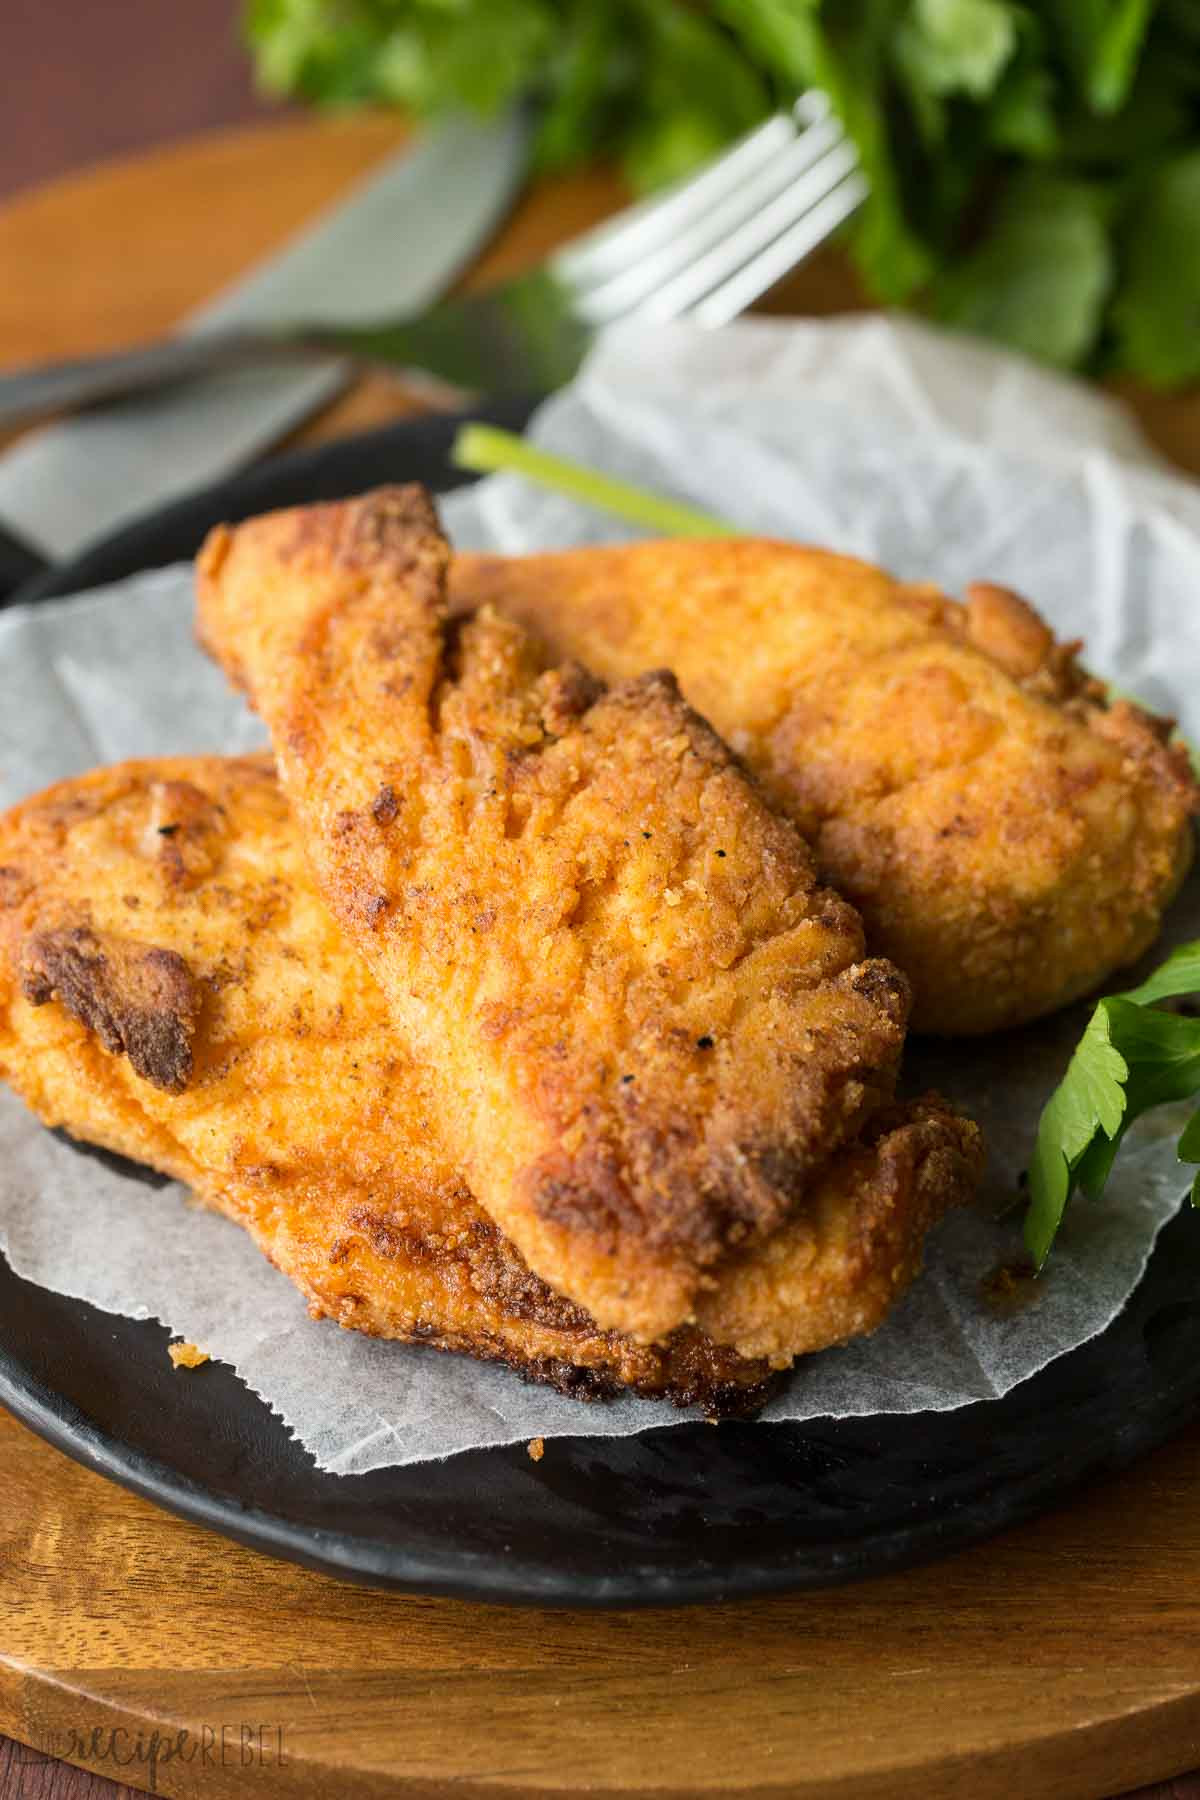 Best Oven Fried Chicken Recipe  The Best Oven Fried Chicken Copycat KFC Fried Chicken